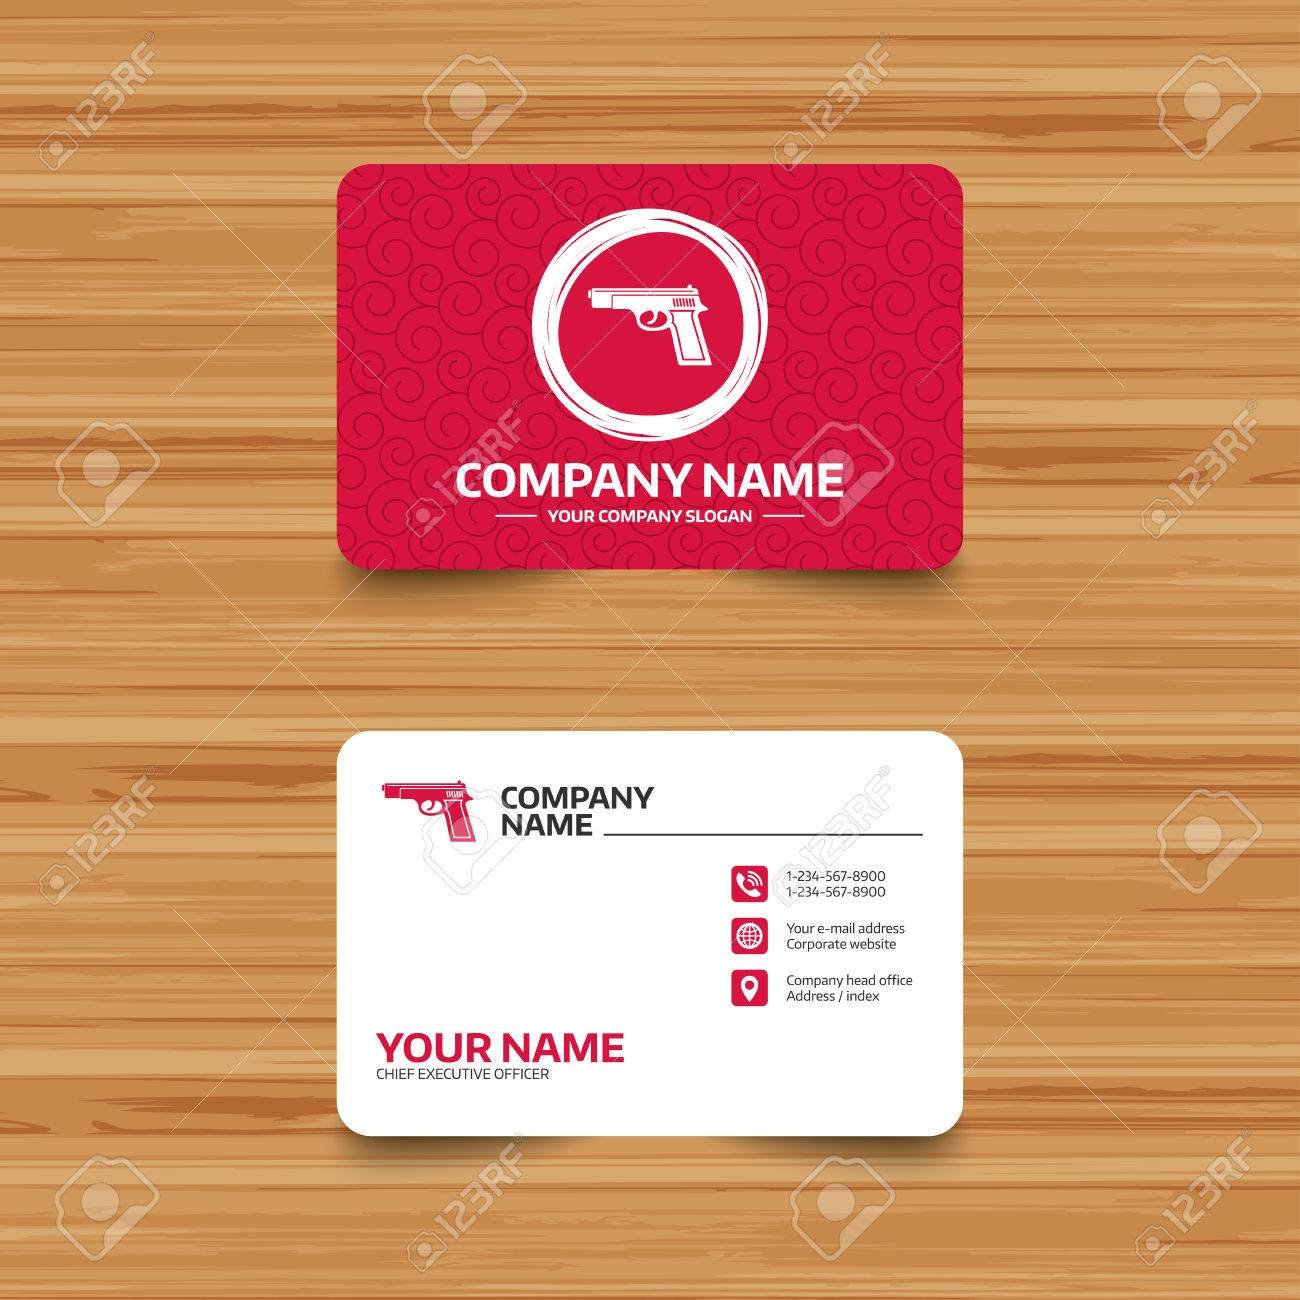 Business card template with texture gun sign icon firearms business card template with texture gun sign icon firearms weapon symbol phone colourmoves